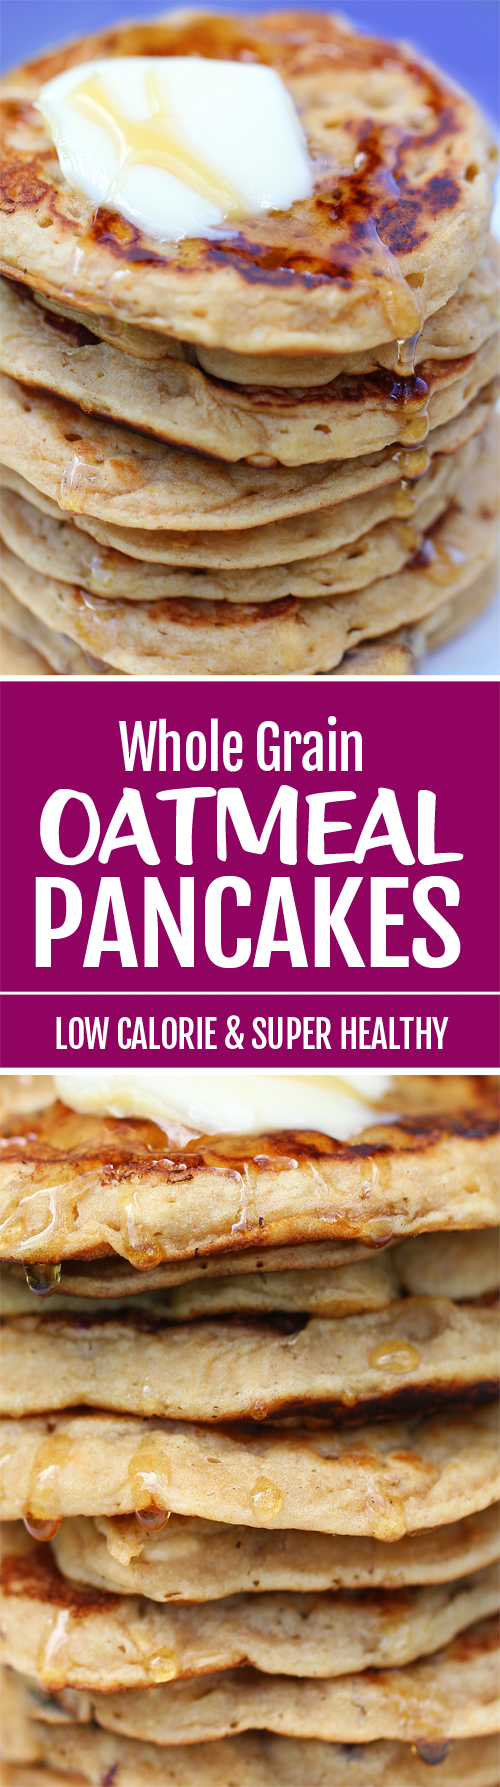 The BEST Oatmeal Pancake Recipe, with whole grain oats and they are vegan too